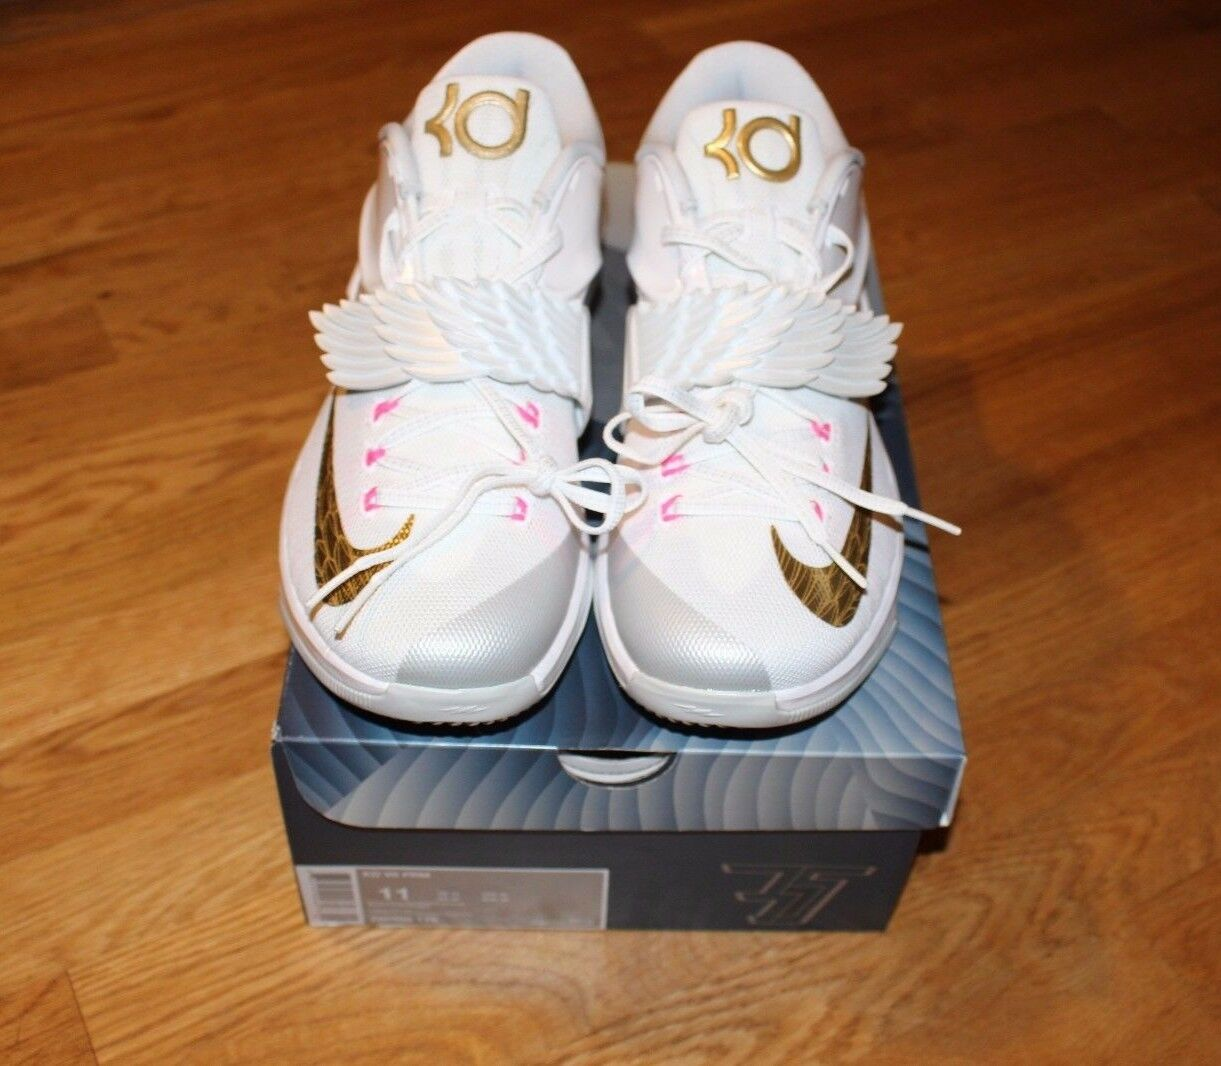 Nike KD7 Aunt Pearl PRM Size 11 Never Worn With Original Box